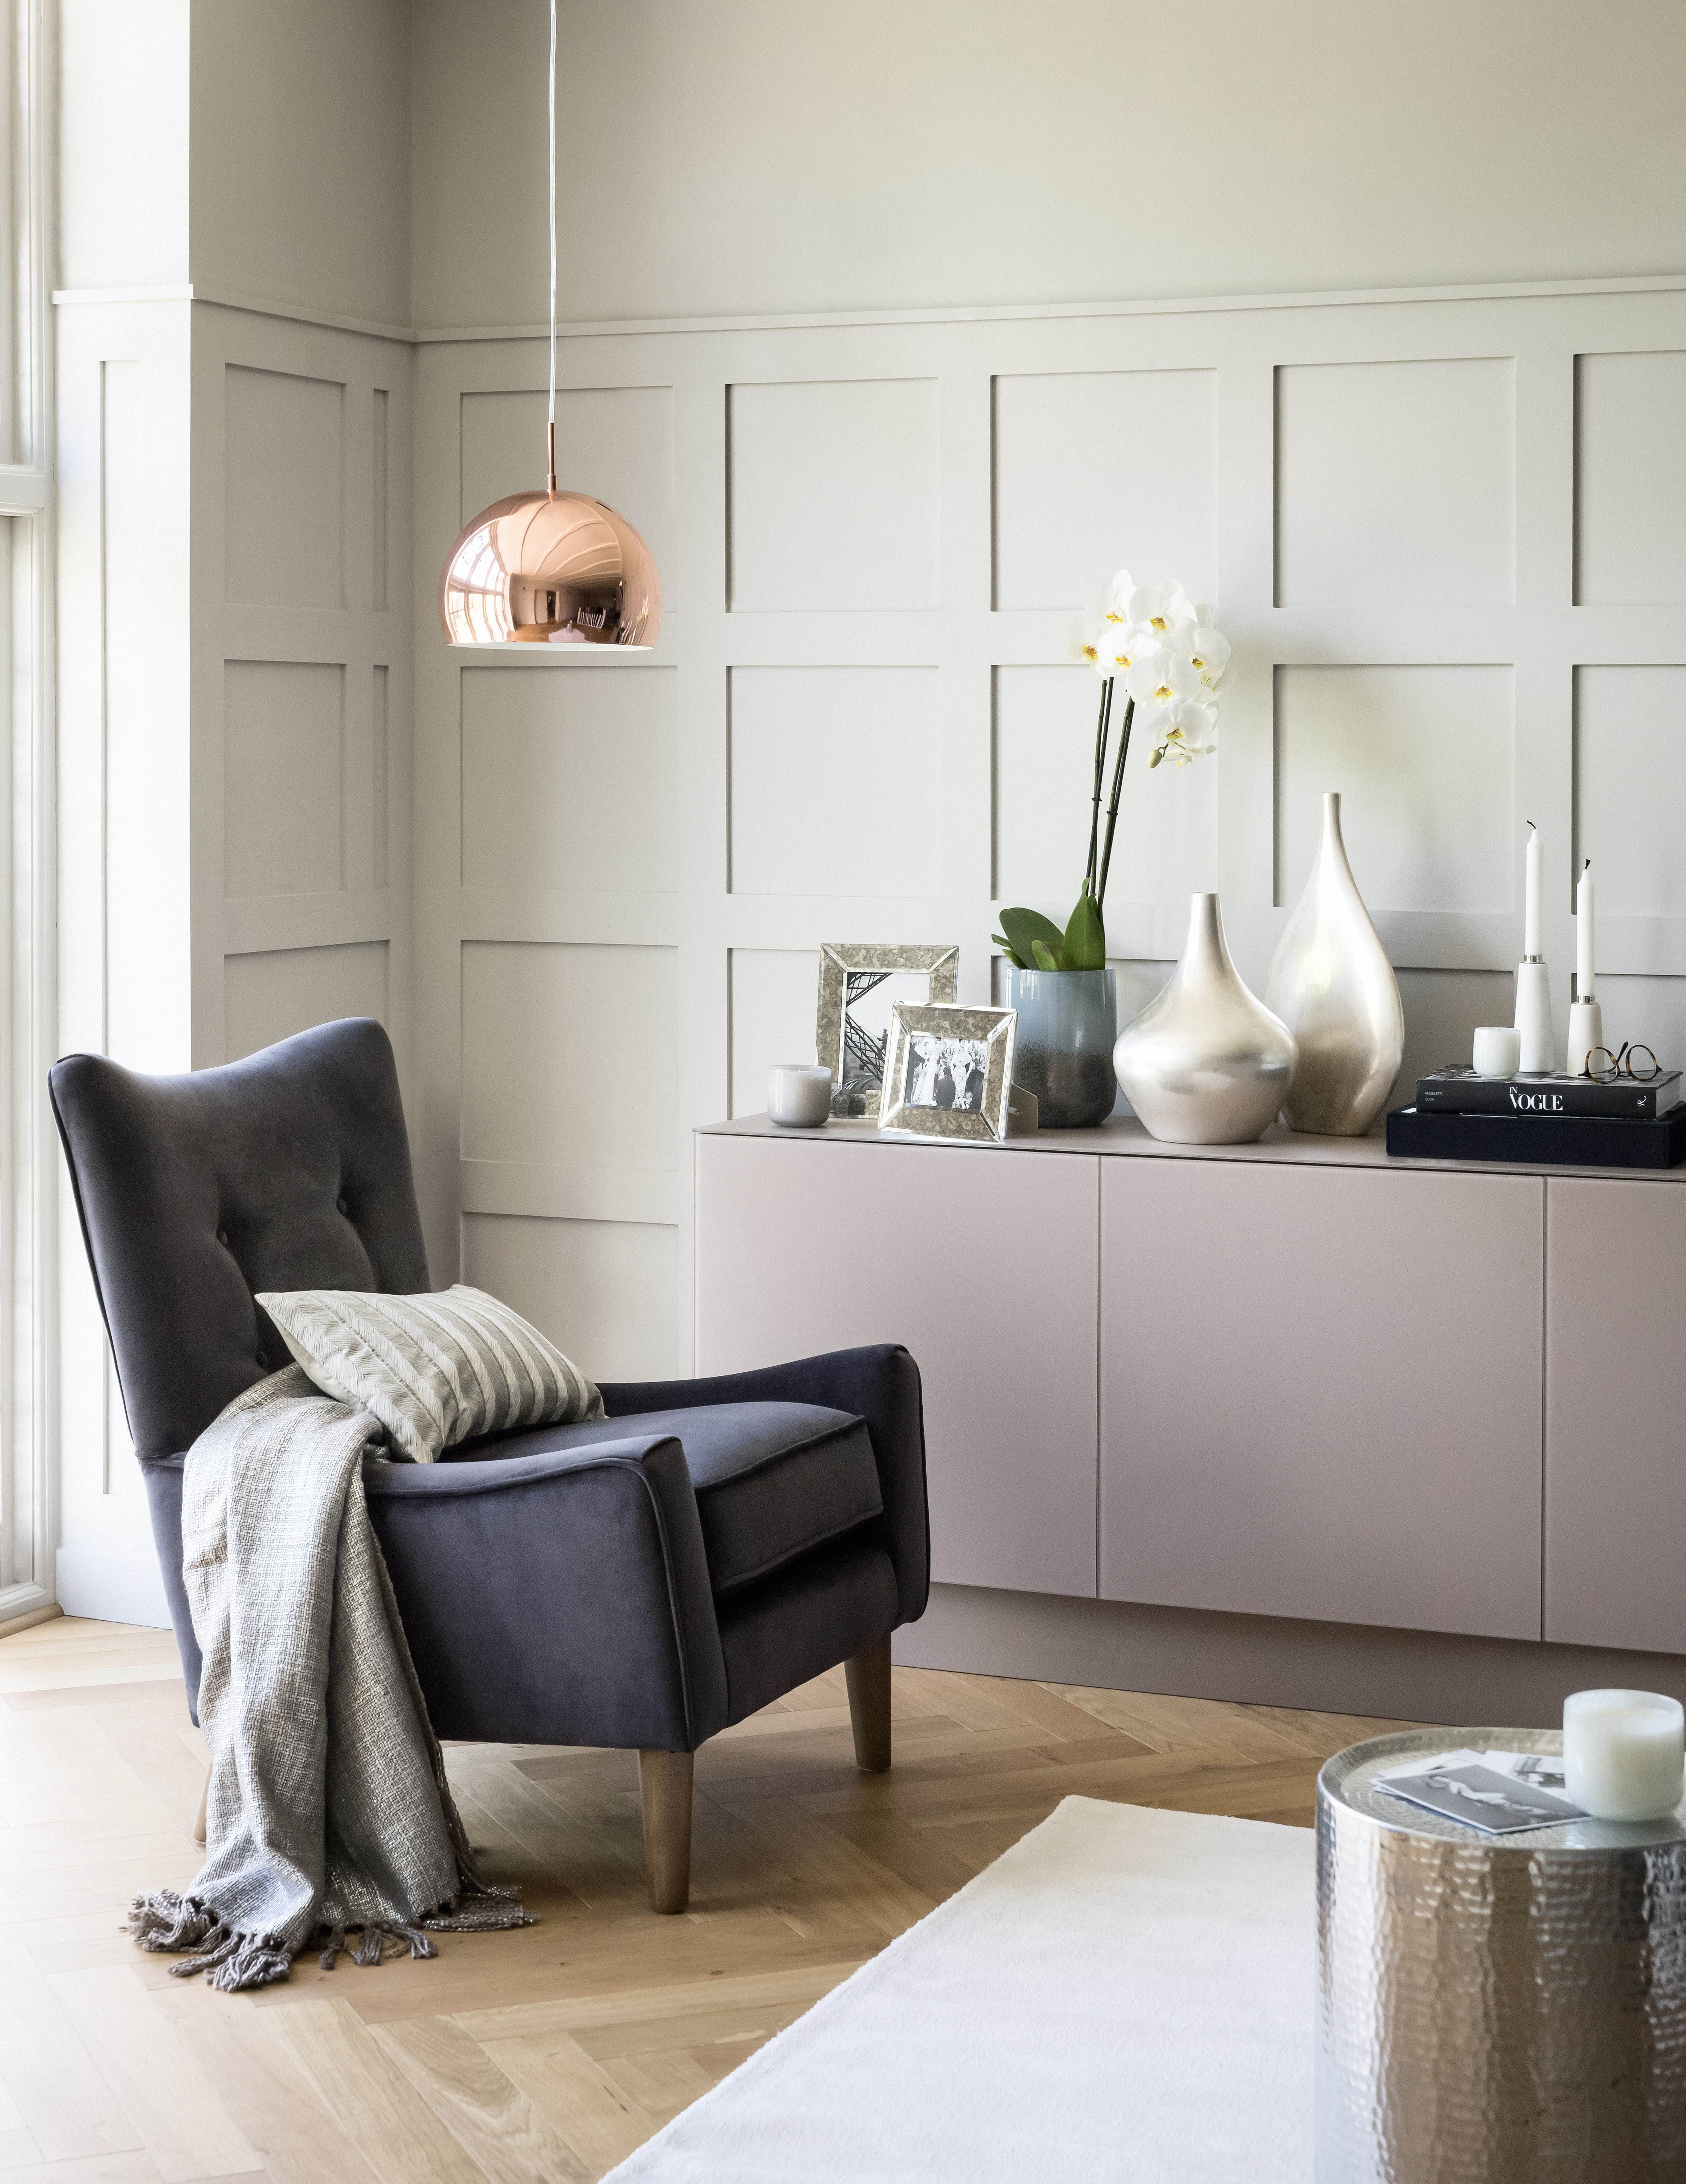 Cool interior tips to make your home look beautiful on a budget